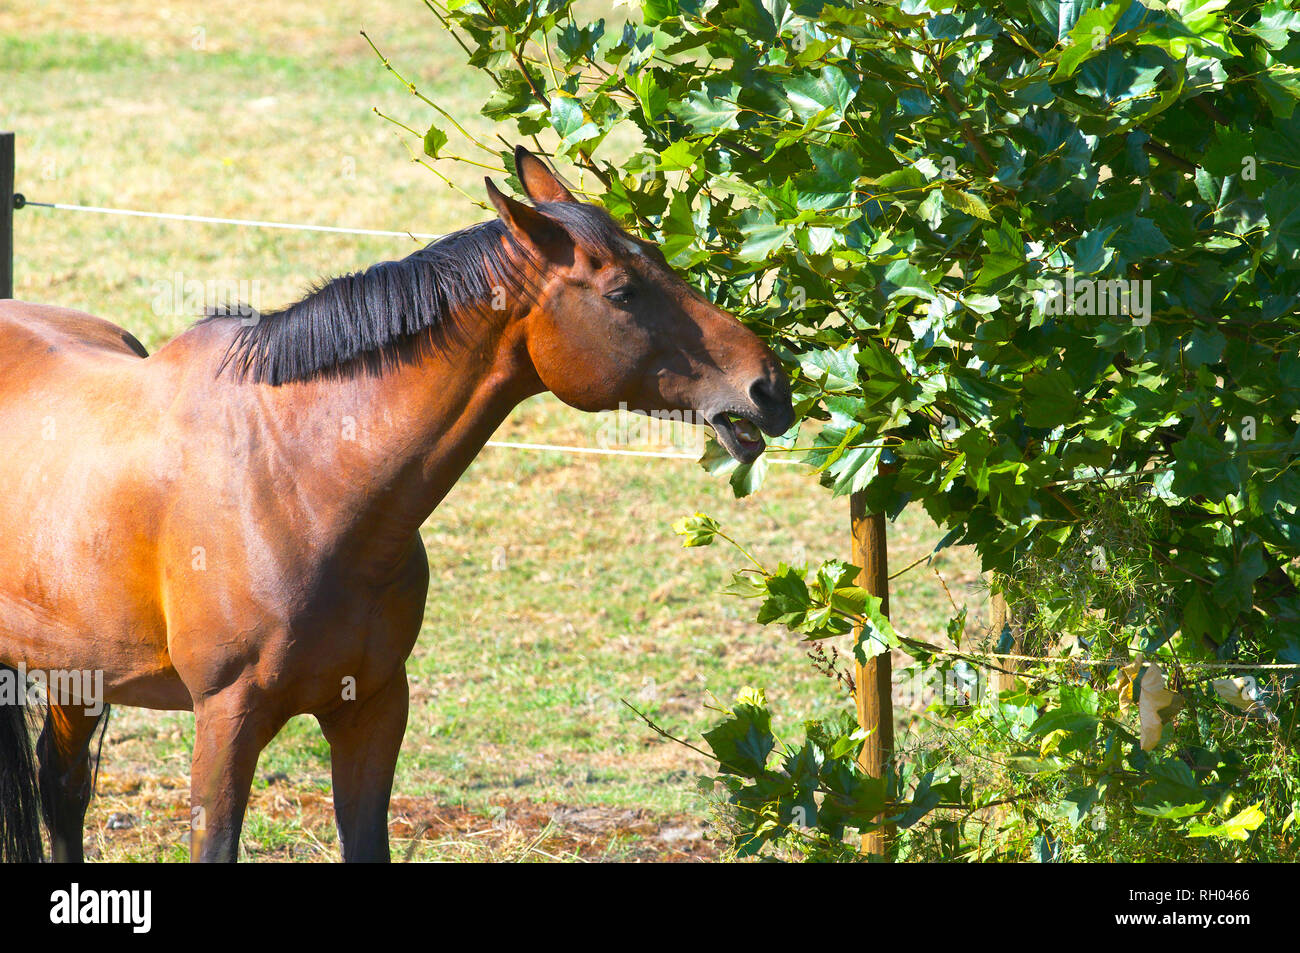 A Bay horse (Equus ferus caballus) with a dark, cropped mane eating leaves from a bush. - Stock Image